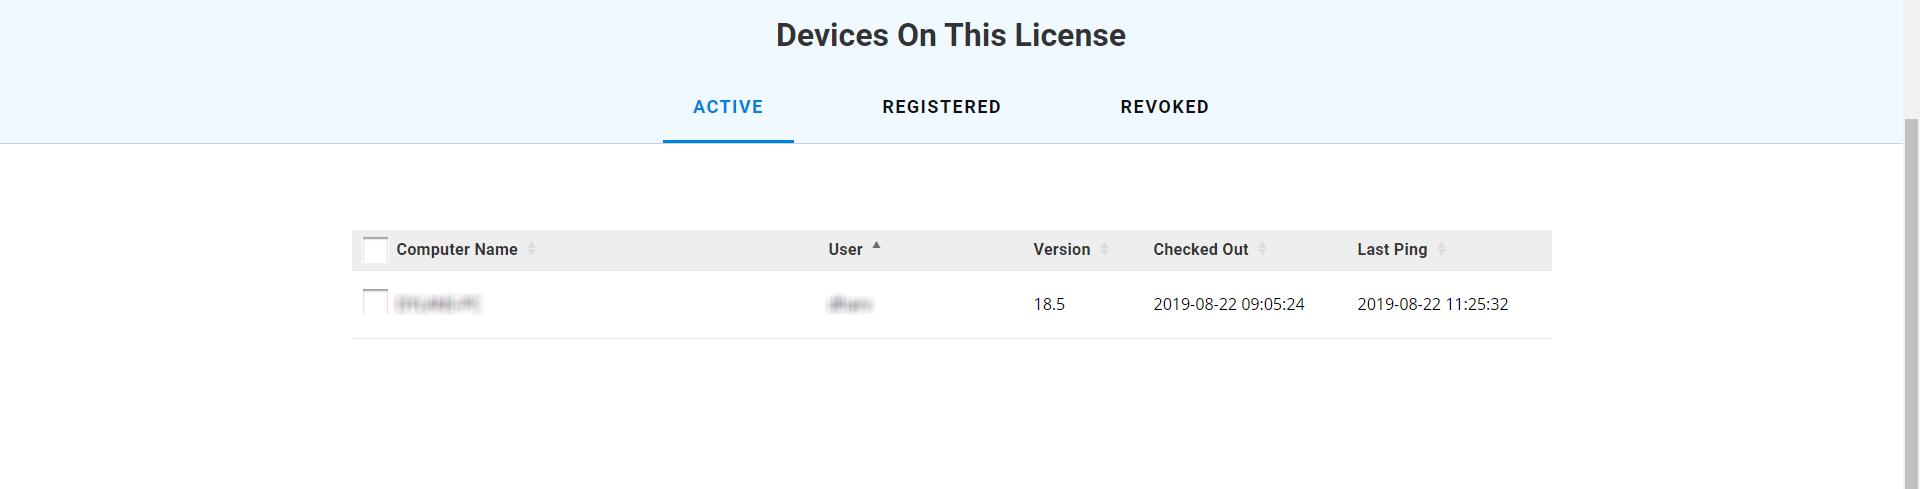 Devices on the Open license in Bluebeam Revu